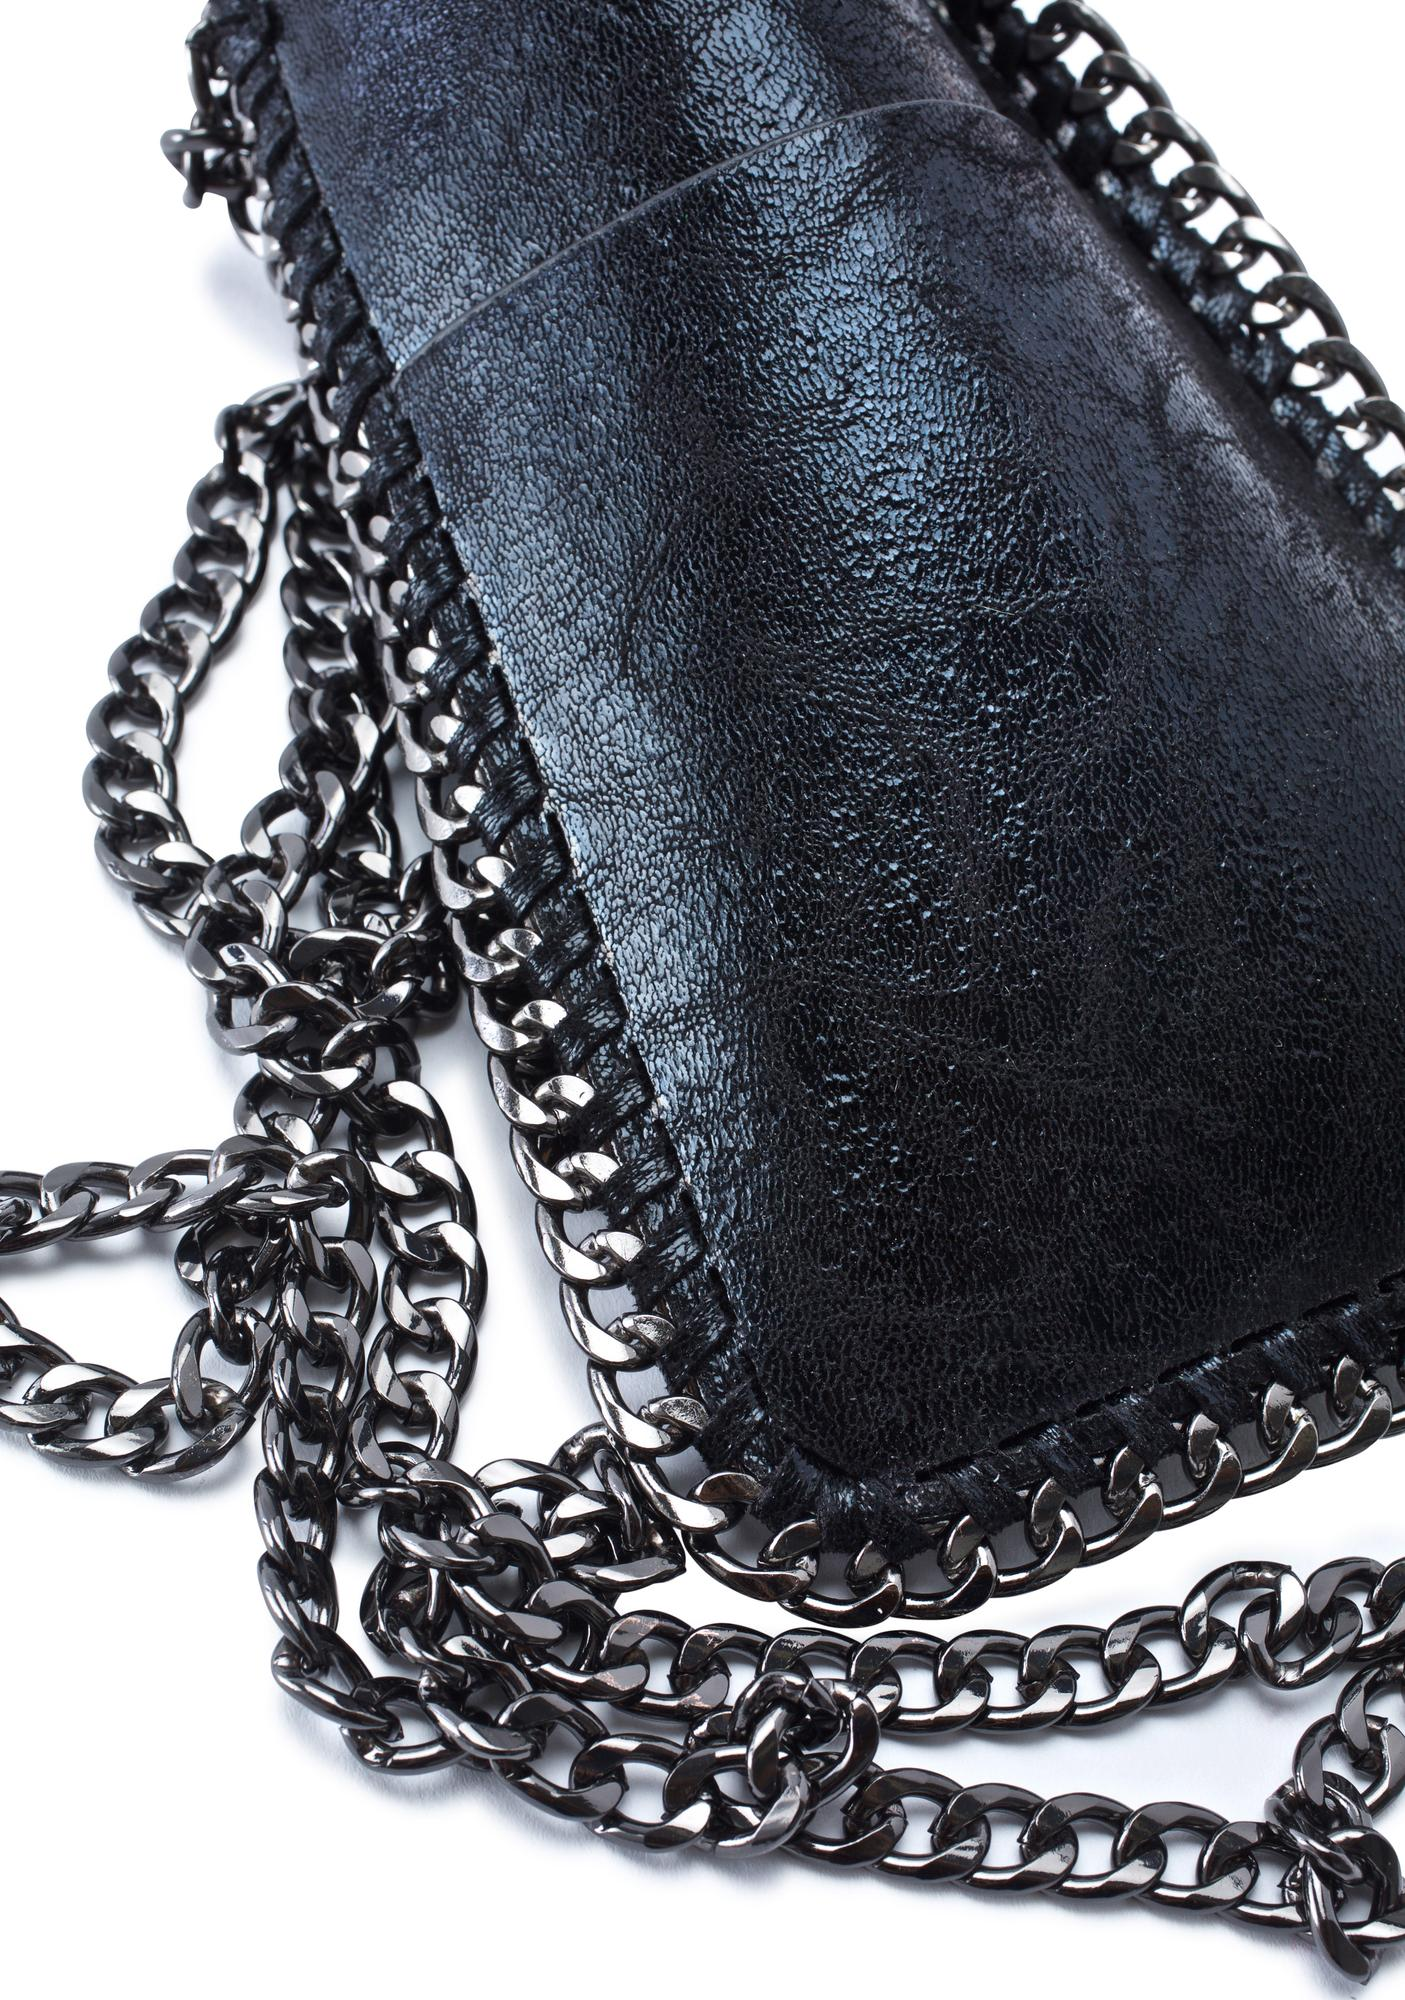 Knightwalker Crossbody Phone Pouch